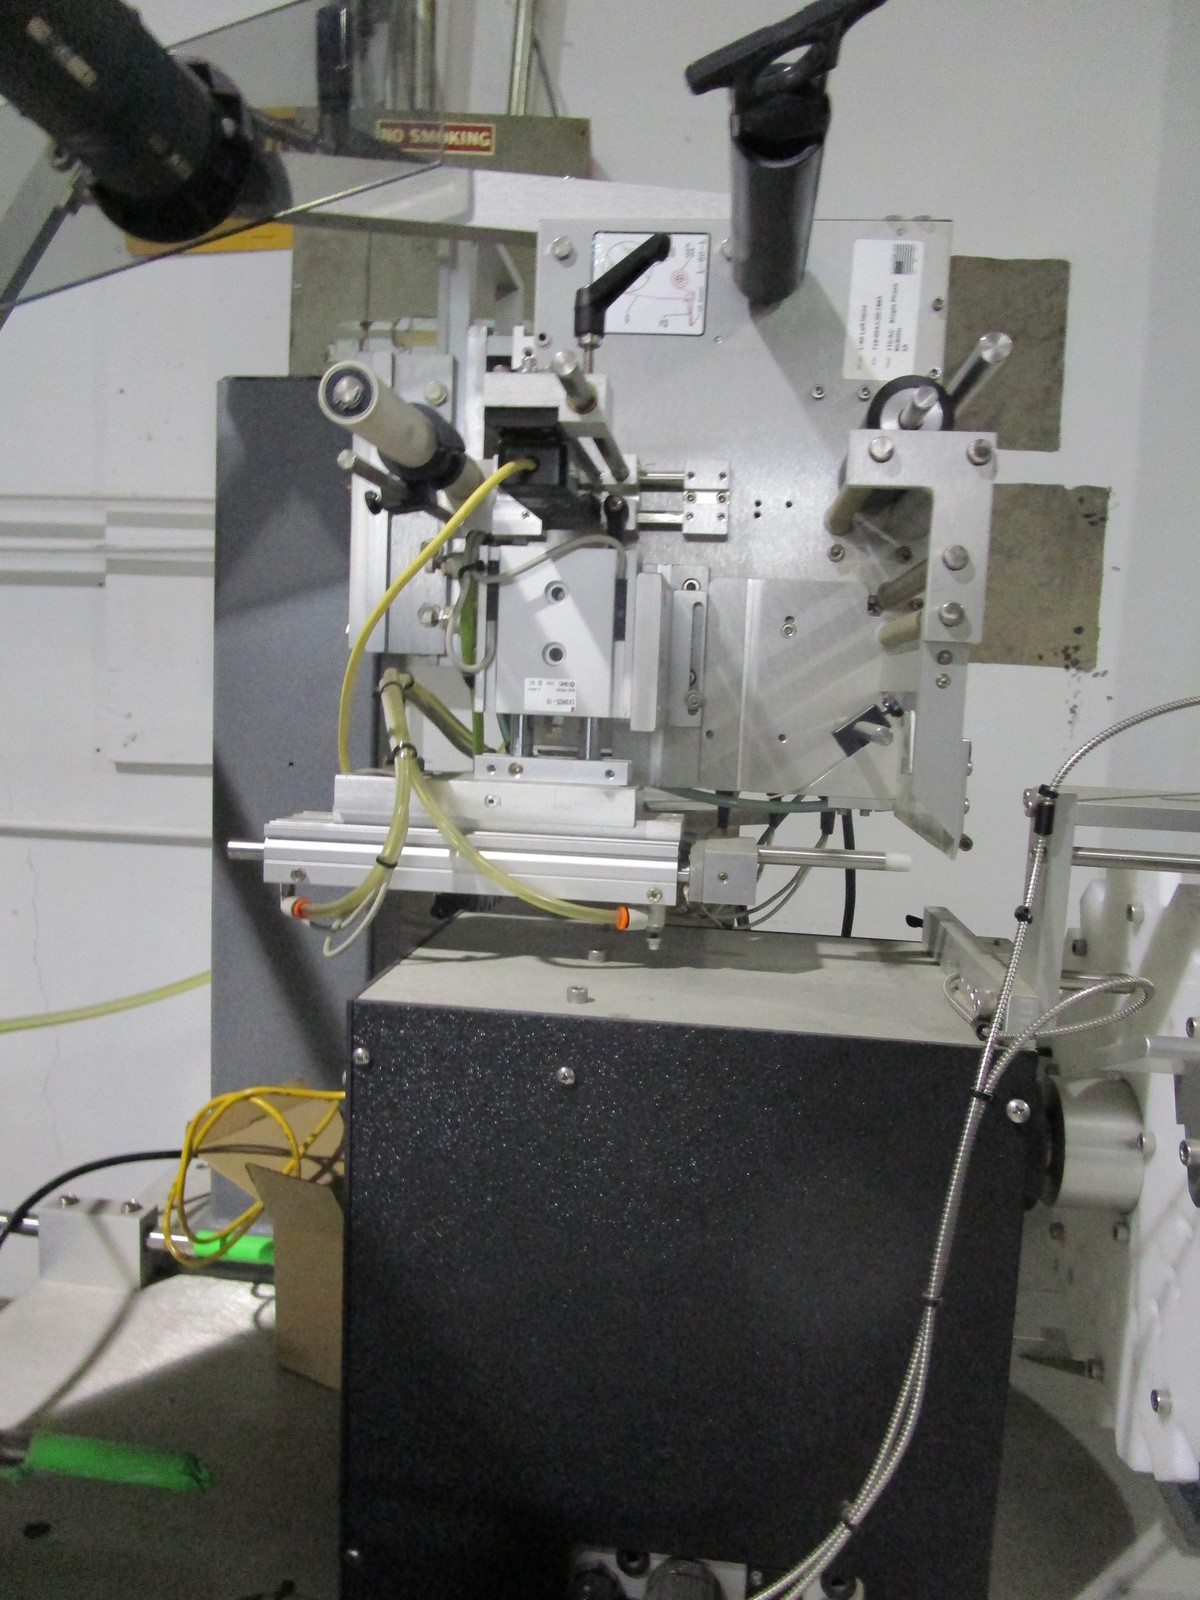 Universal R-315 Carrousel/L-15 Labeling System/L-60 Left Hand s/n 718-004-1-05-1064 | Rig Fee: $50 - Image 10 of 10